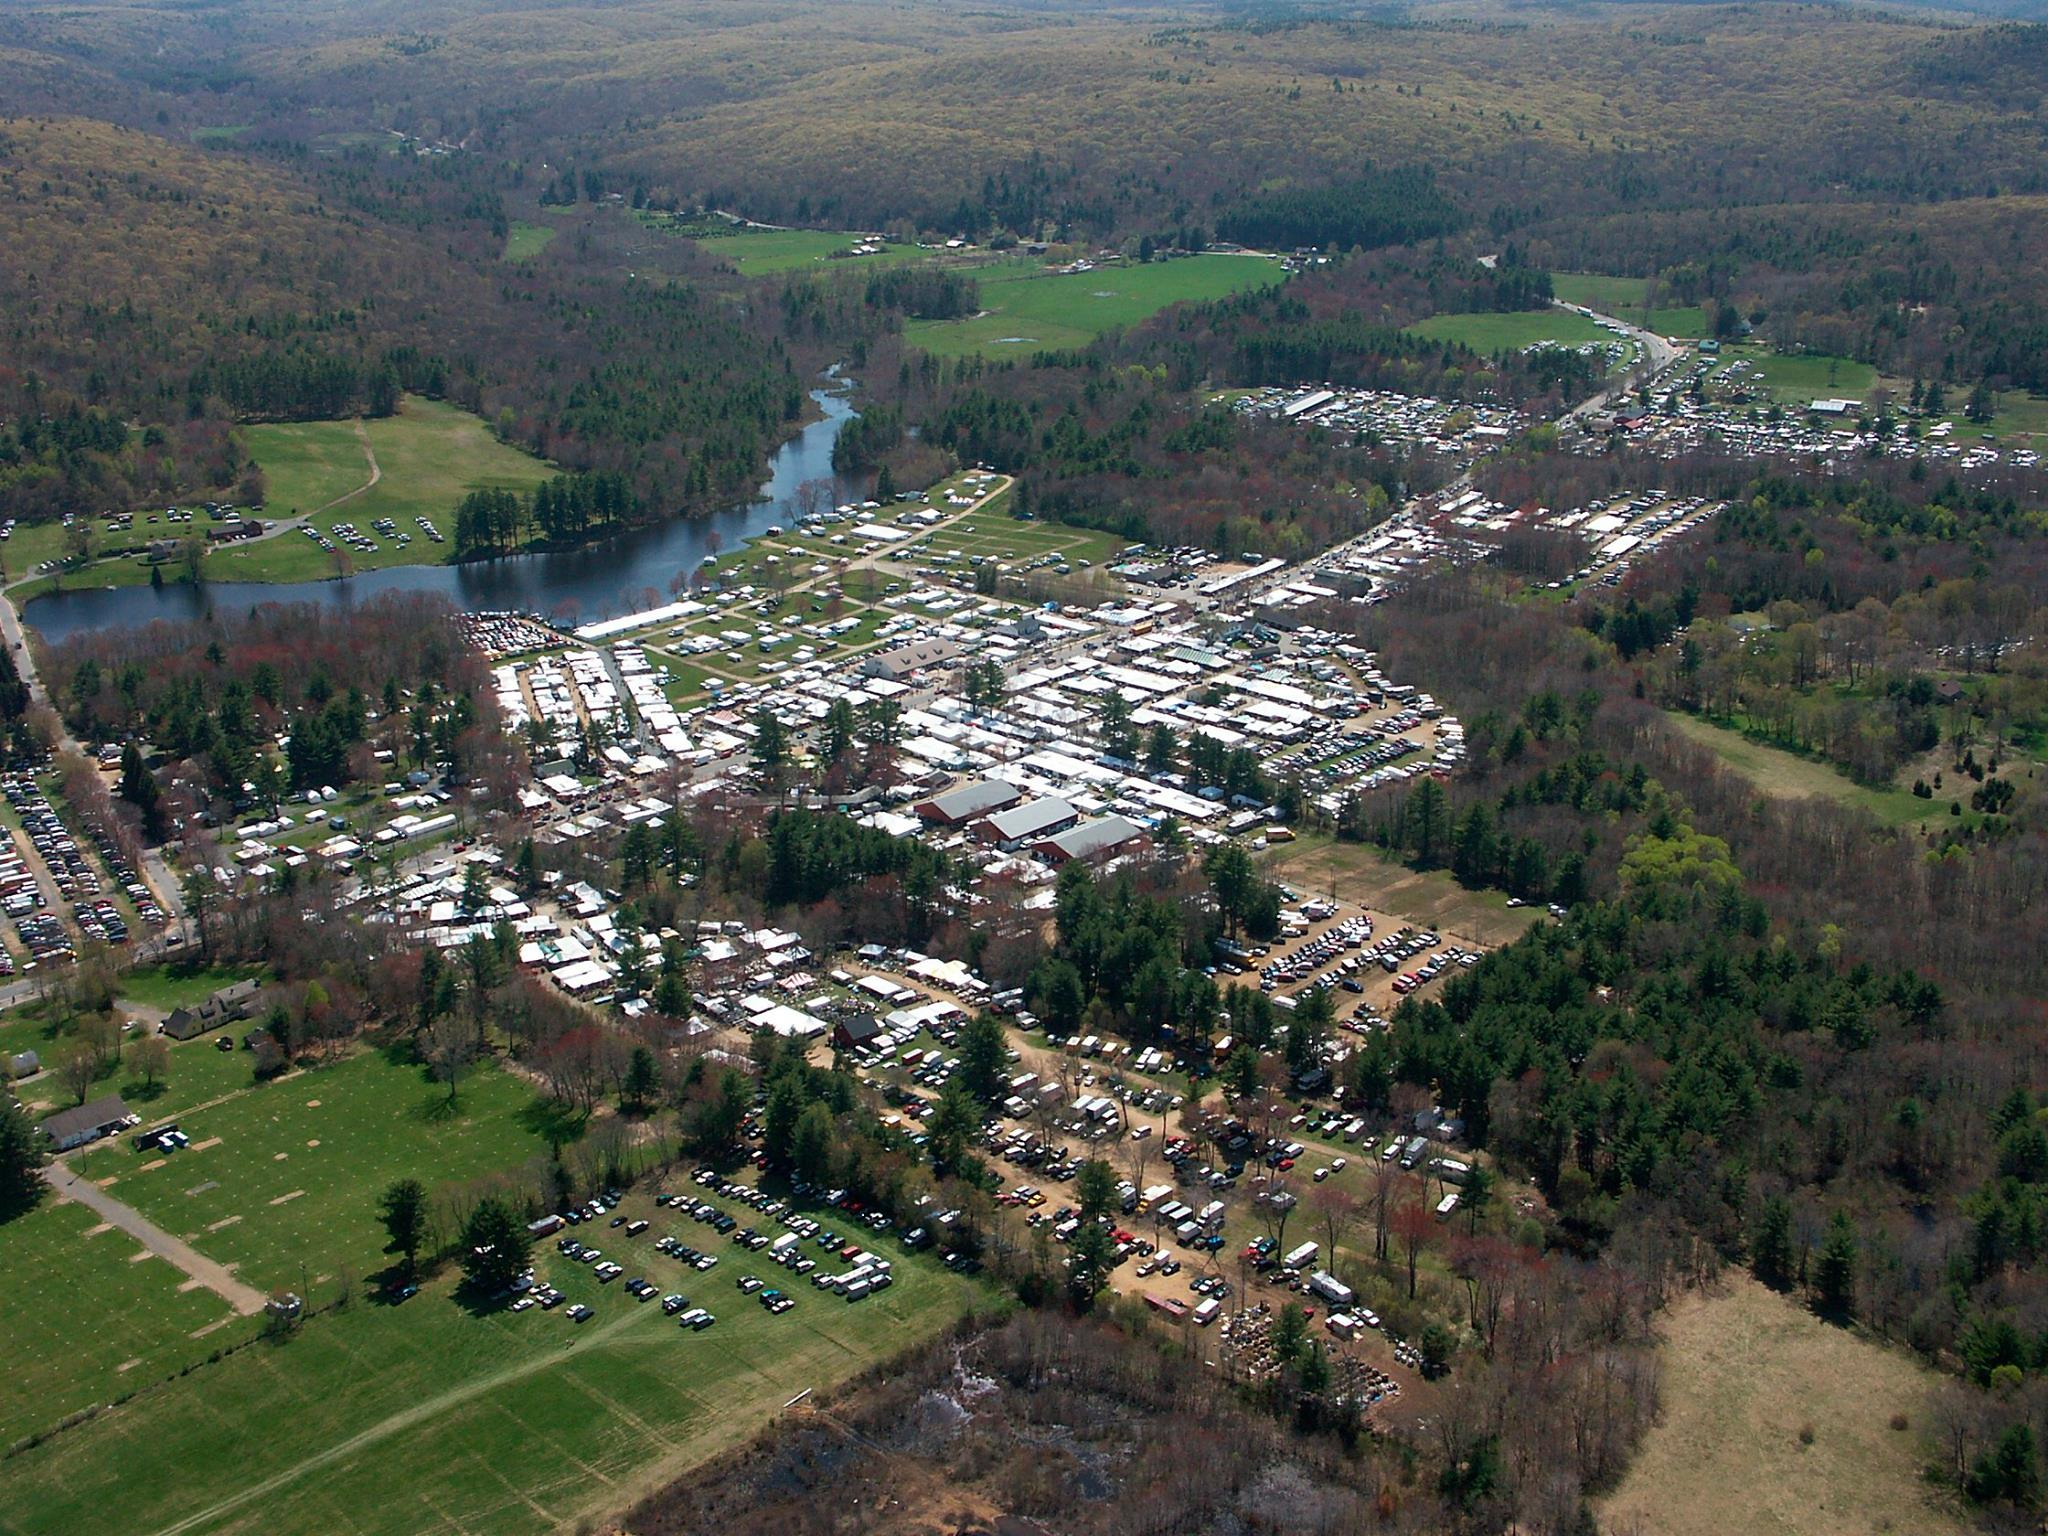 Miles of antique treasures offered by thousands of dealers in Brimfield, MA.